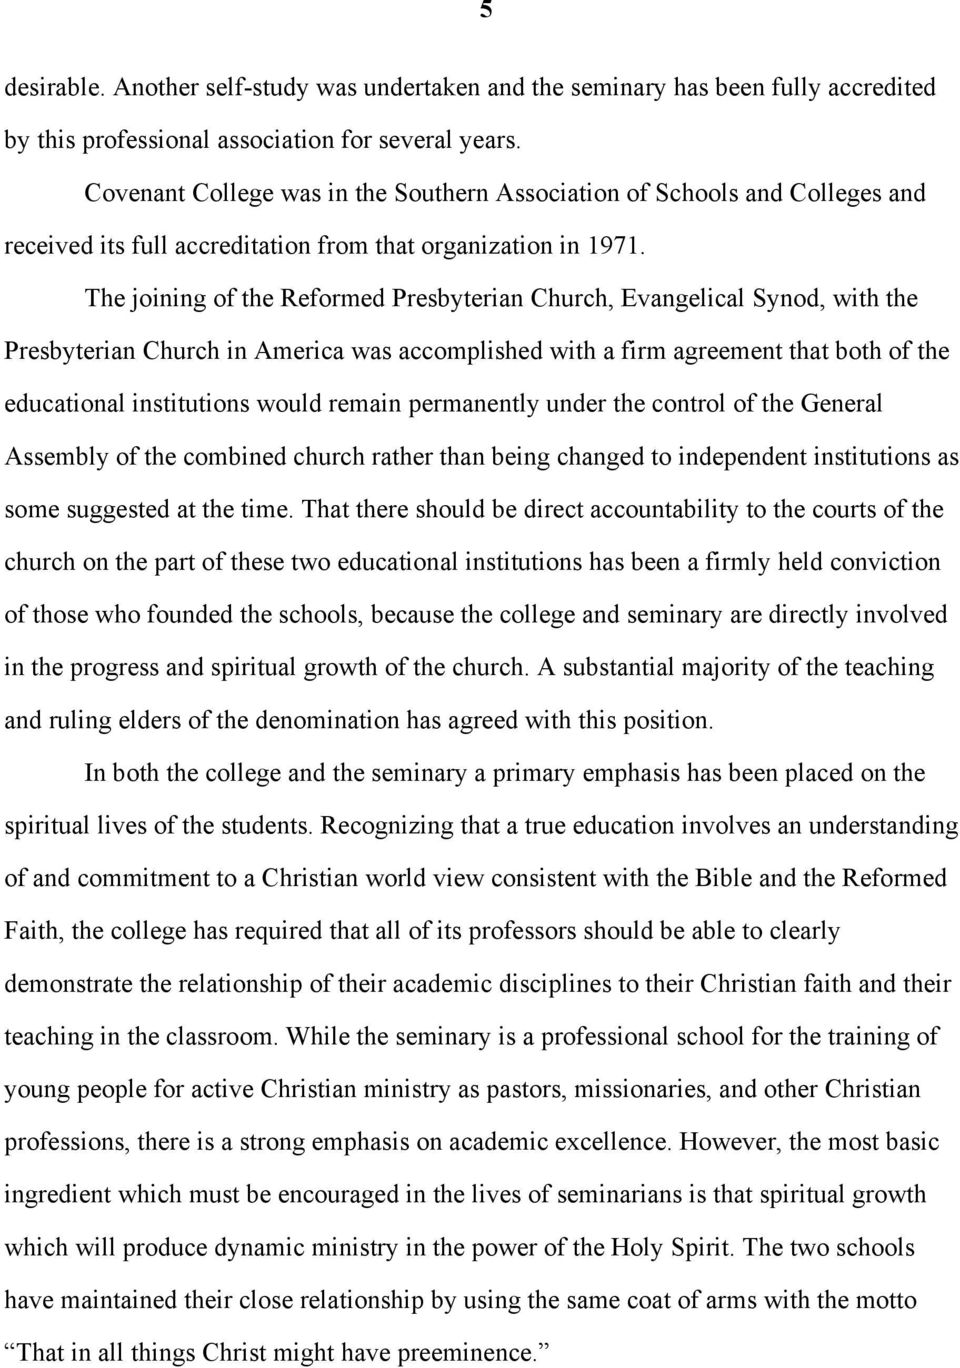 The joining of the Reformed Presbyterian Church, Evangelical Synod, with the Presbyterian Church in America was accomplished with a firm agreement that both of the educational institutions would